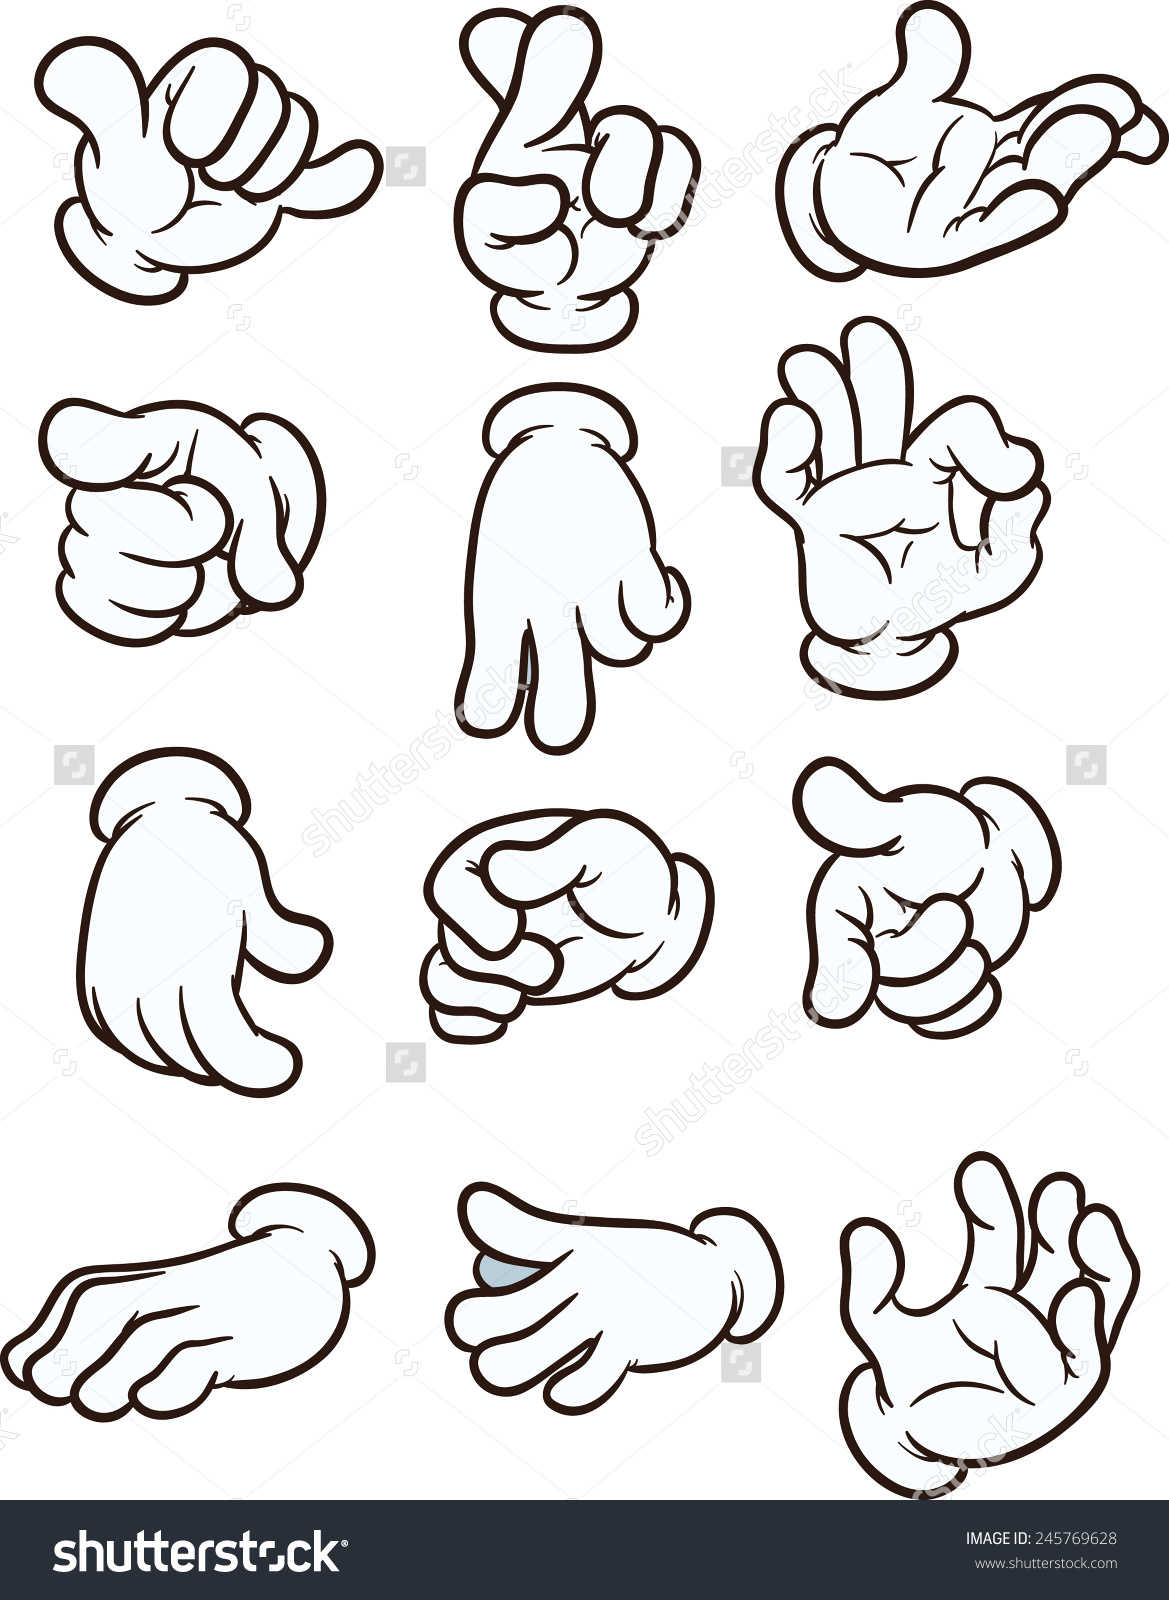 Cartoon hand clipart image free library Cartoon hand clipart - ClipartFest image free library